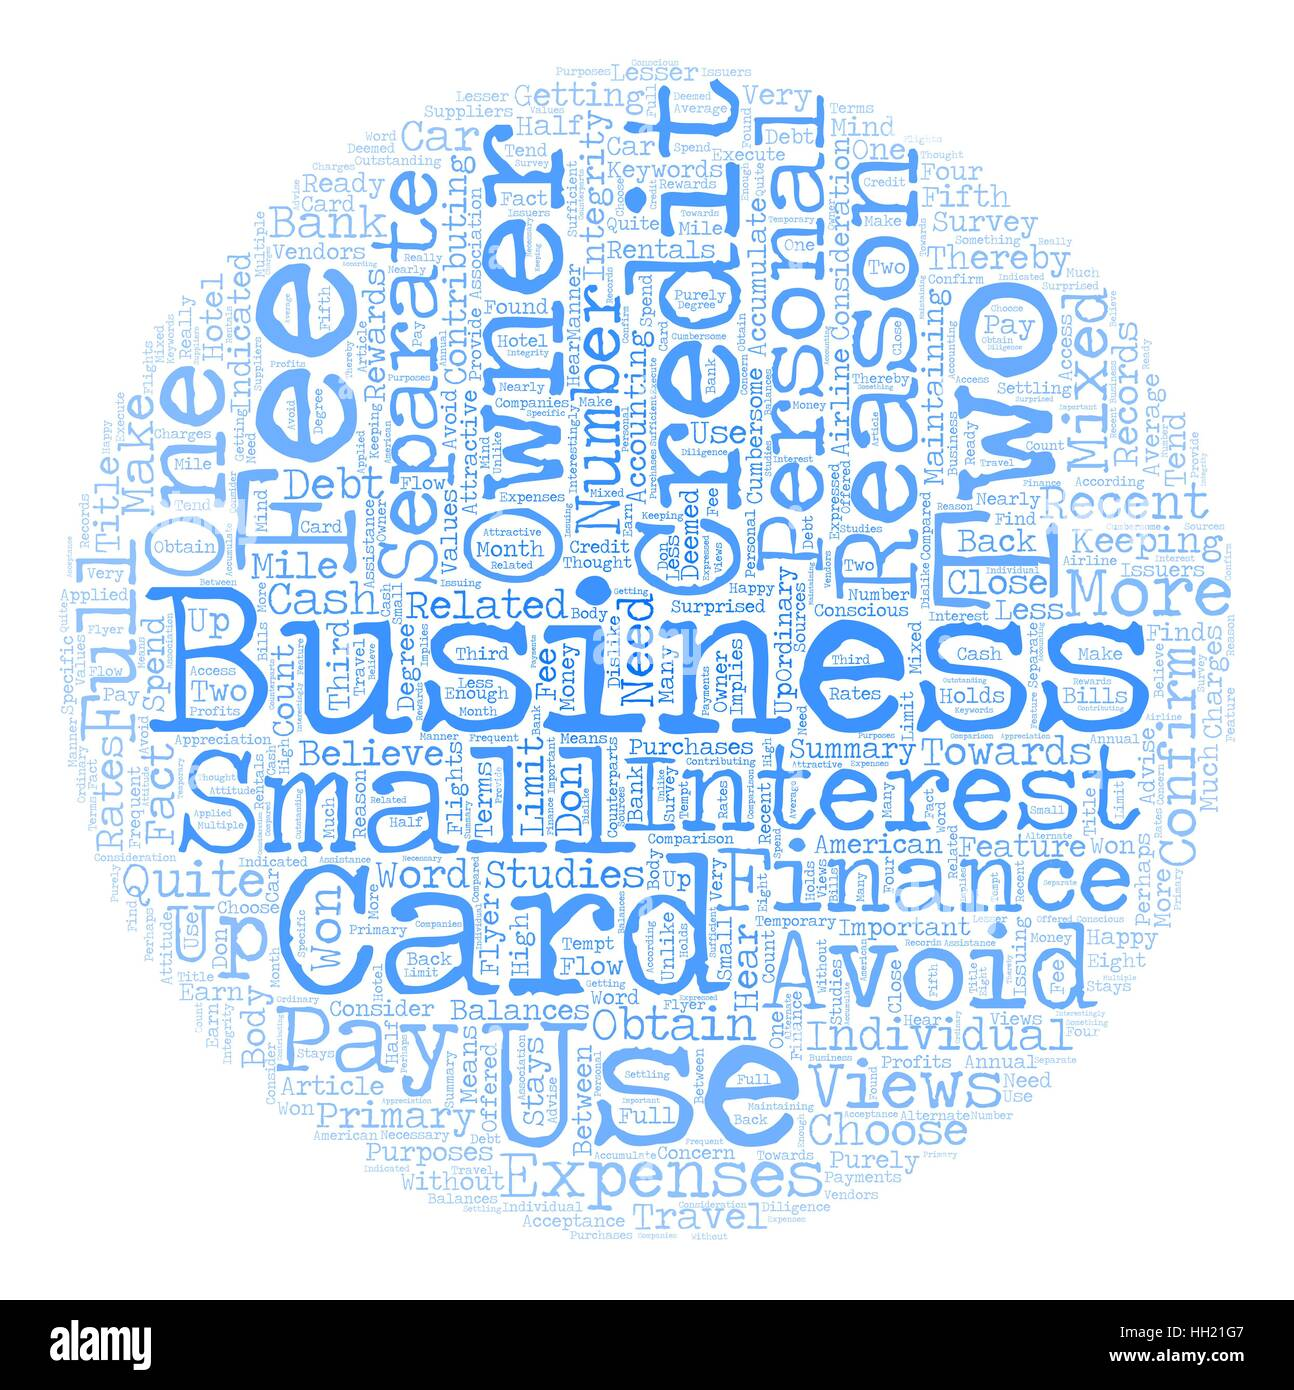 Business owners views of business credit cards text background stock business owners views of business credit cards text background wordcloud concept colourmoves